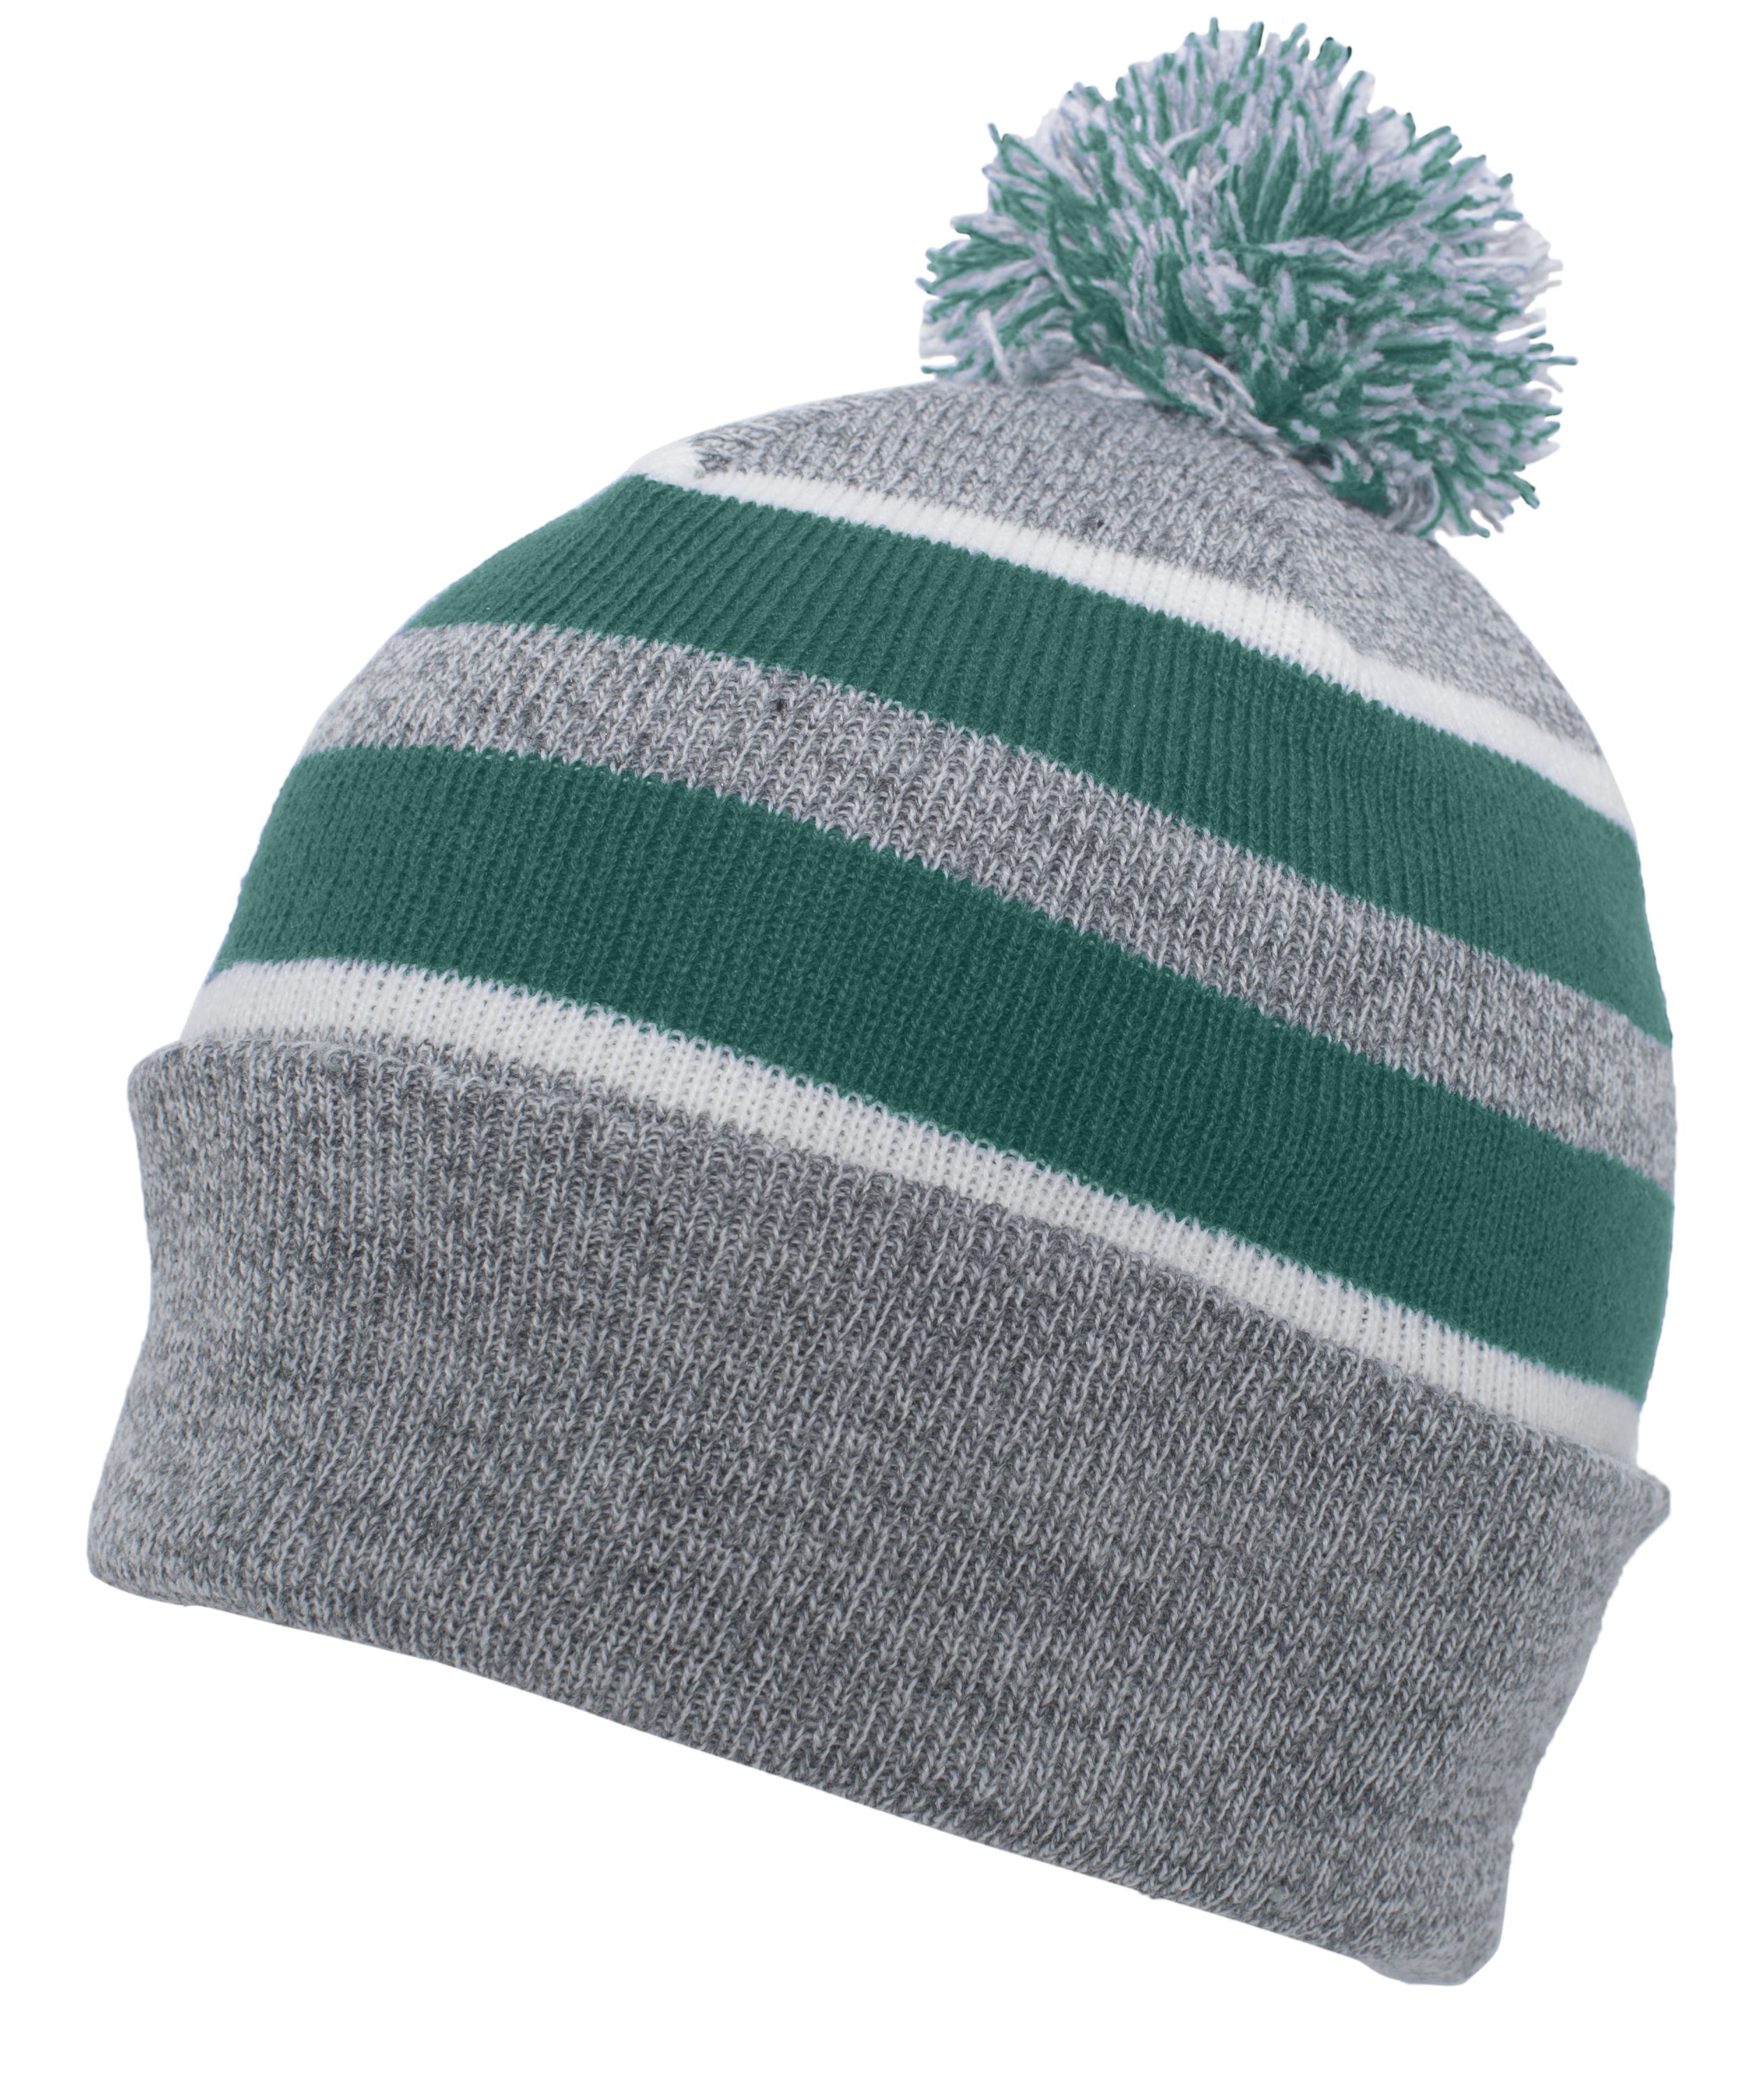 Knit Fold Over Pom-Pom Beanie - HEATHER/KELLY/WHITE